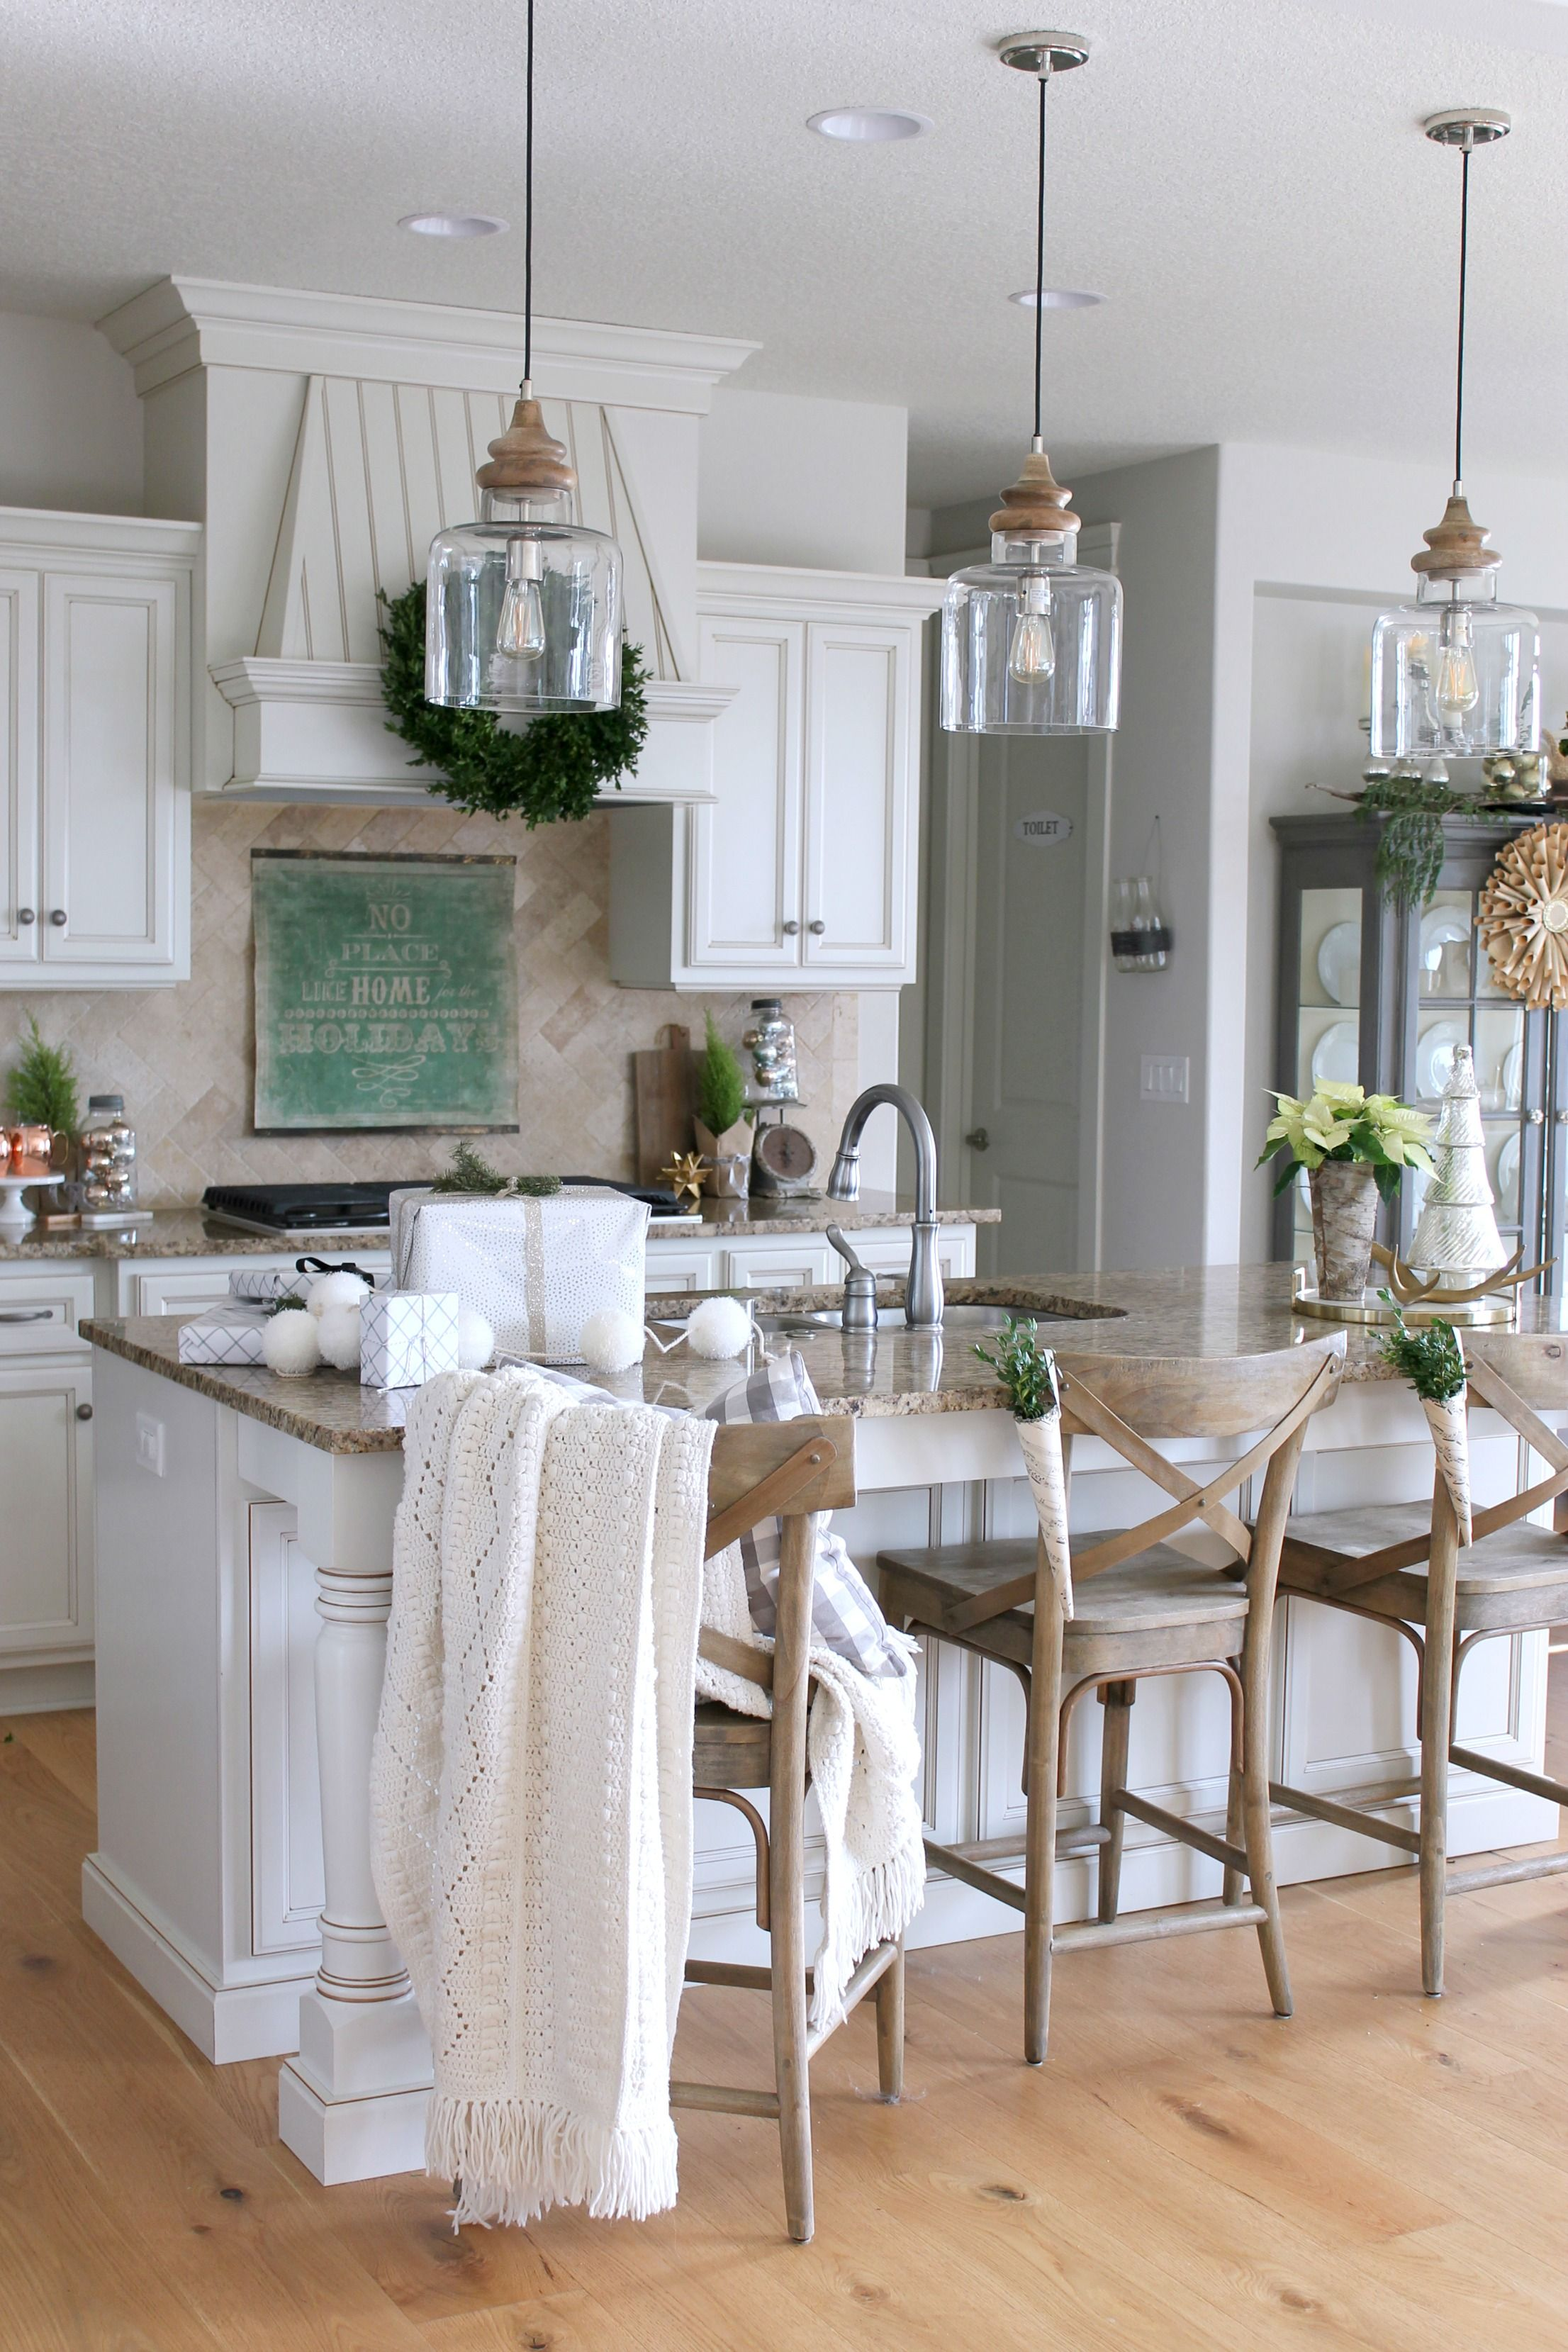 New Farmhouse Style Island Pendant Lights | Kitchens ...